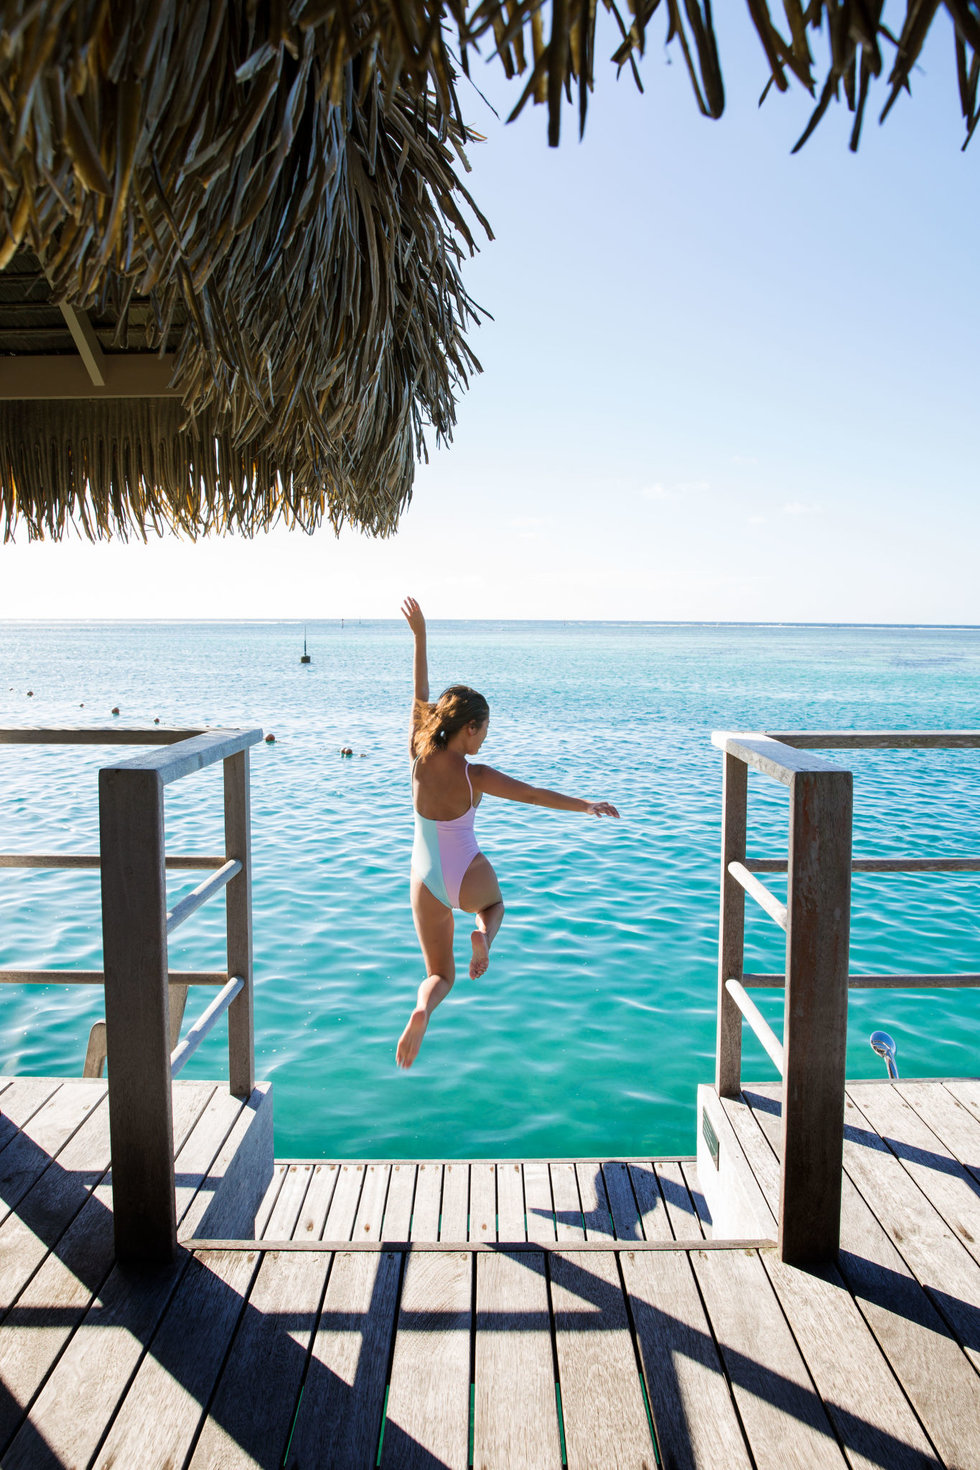 Leaping into the Moorea lagoon